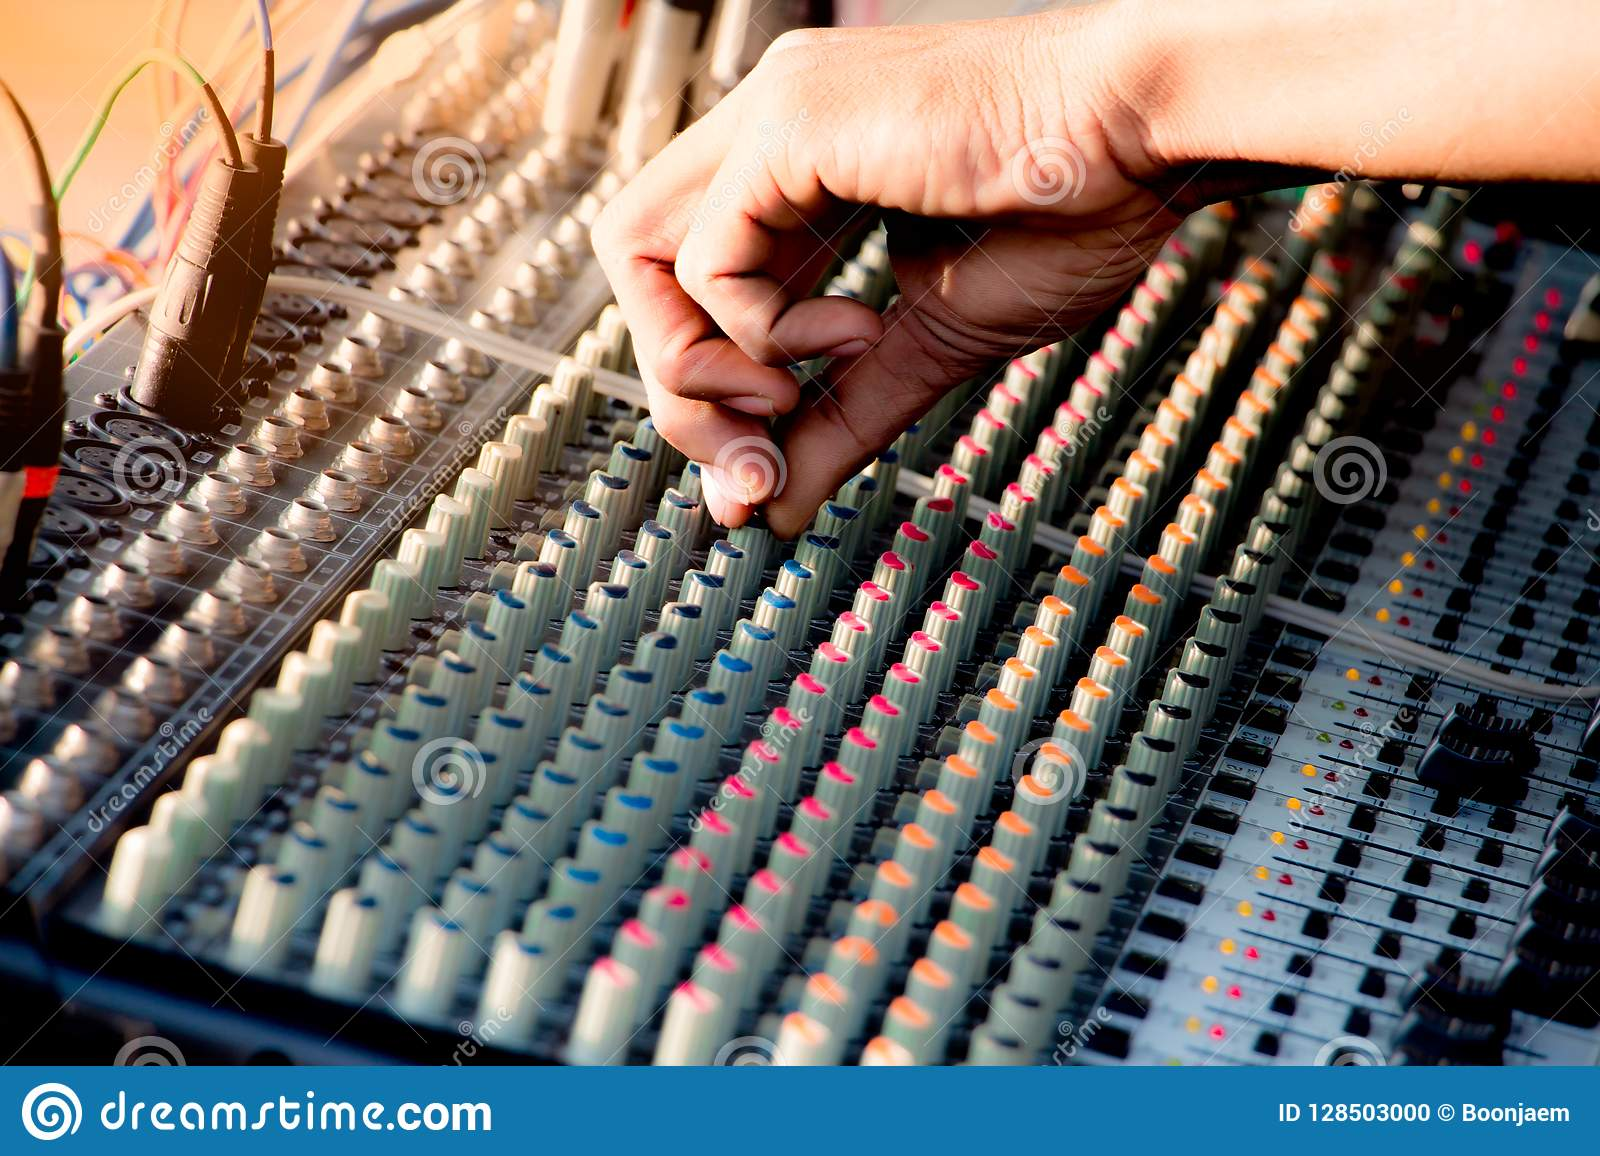 Hand adjusting audio mixer control music,music equipment for sound mixer control, electronic device.